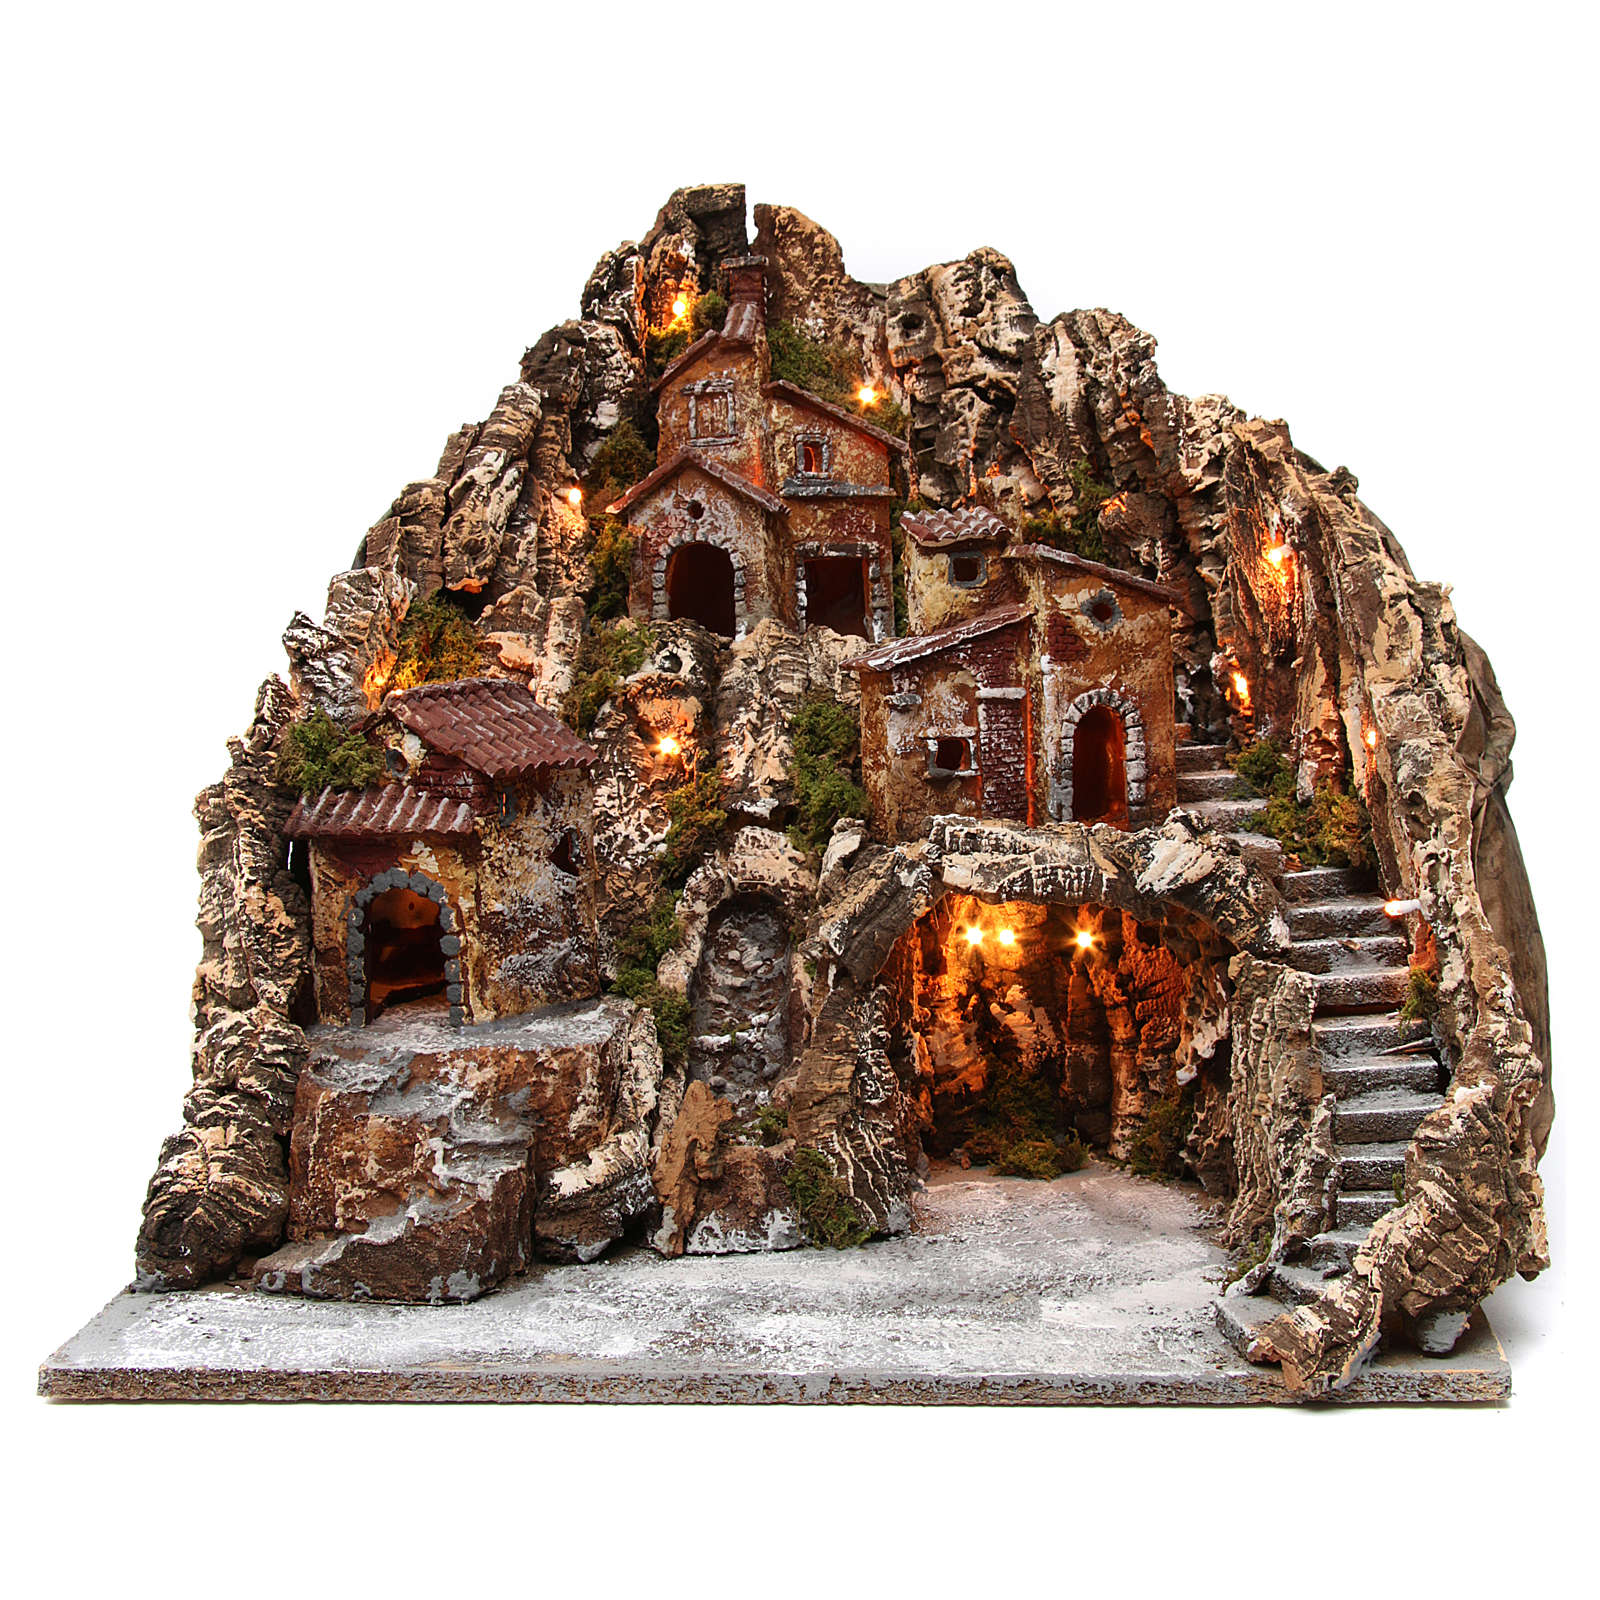 Neapolitan nativity scene setting with lights, cave and stream 50x50x60 cm 4